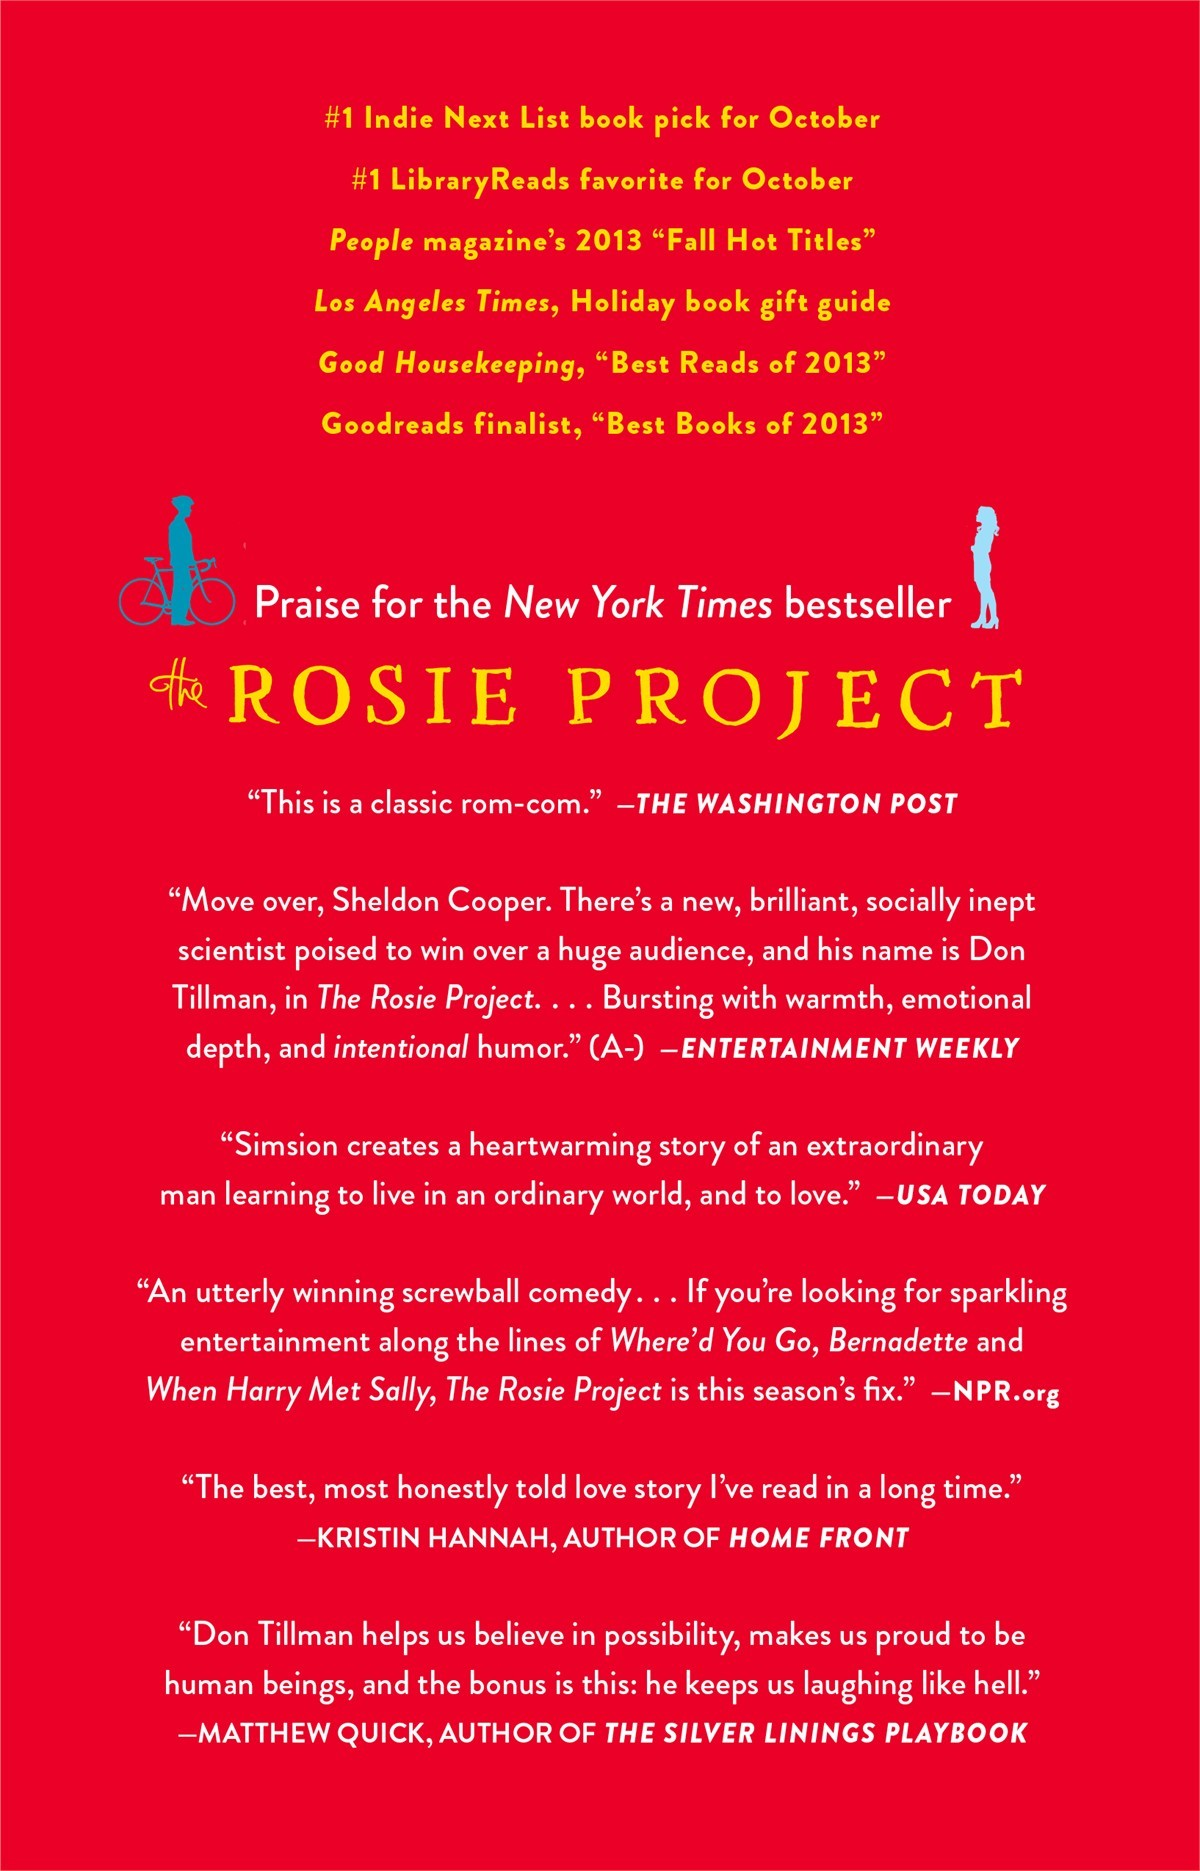 The rosie project 9781476729091.in18